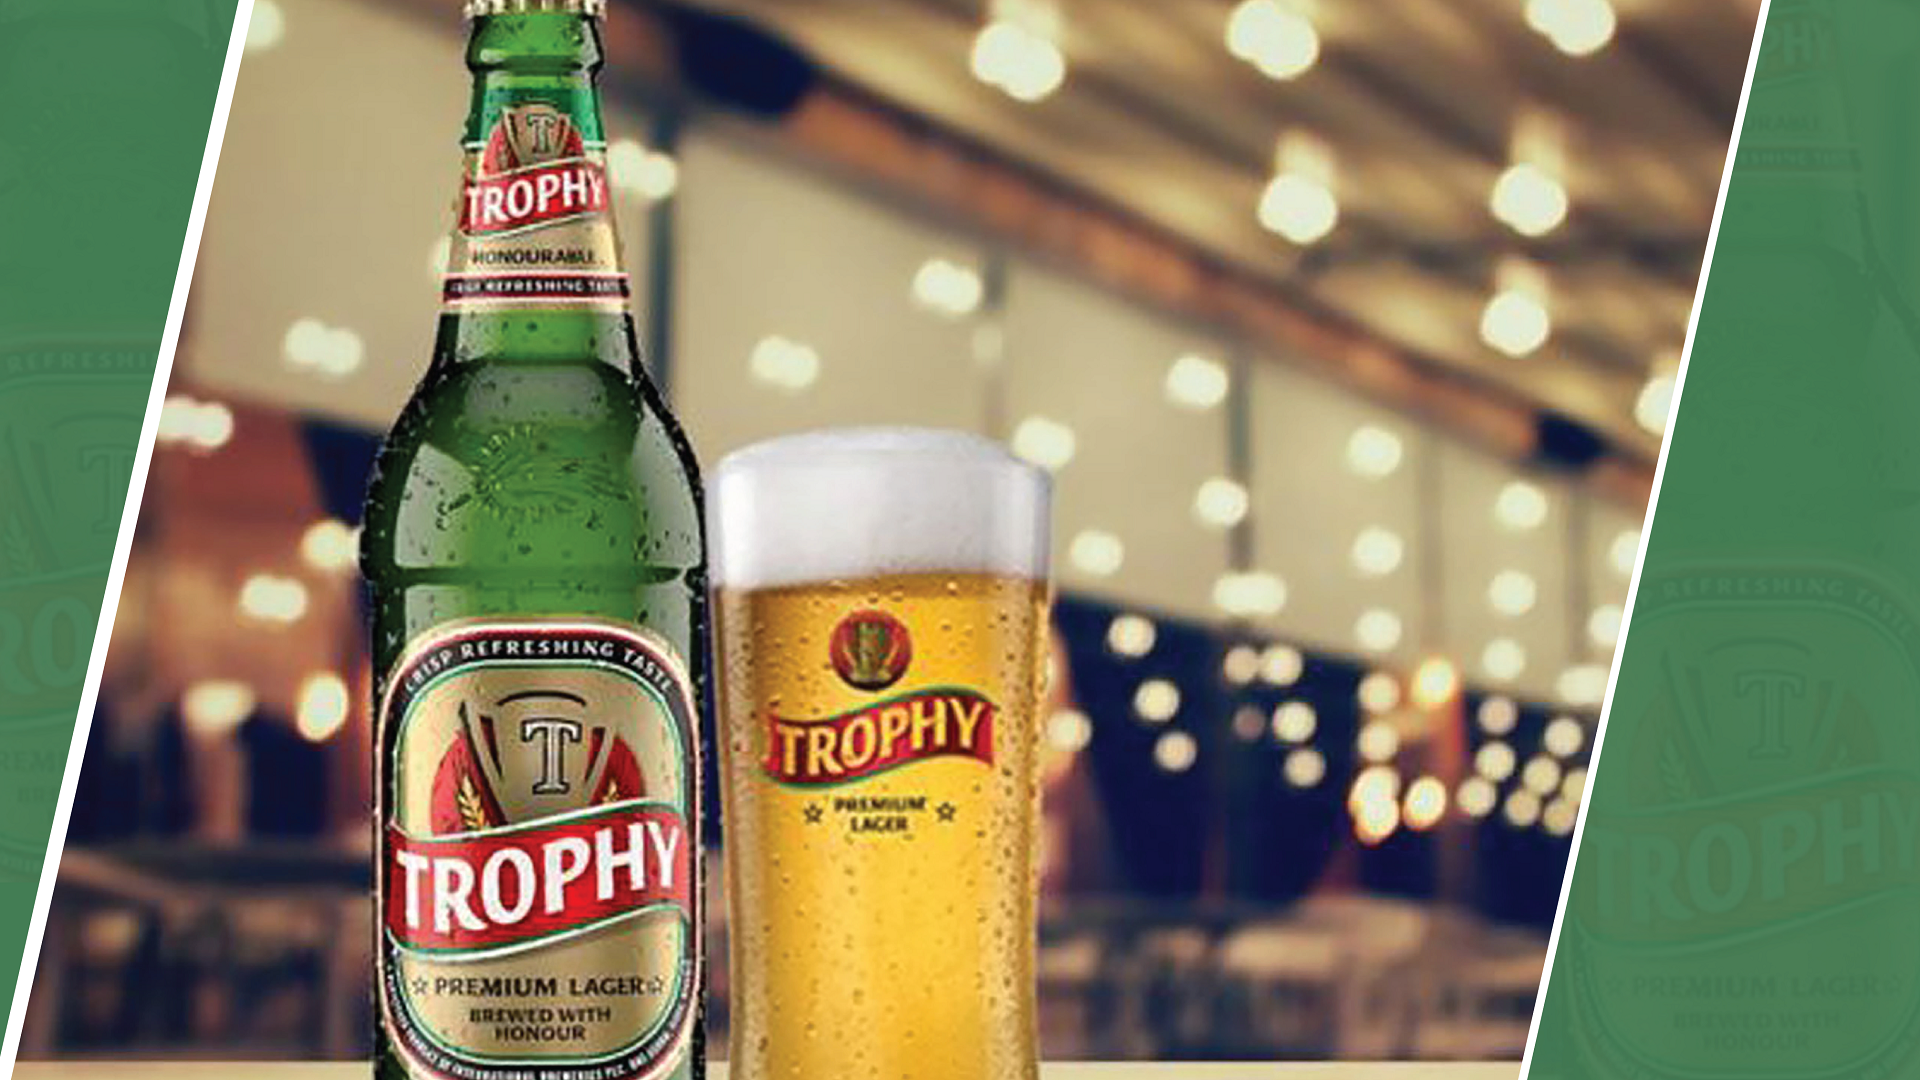 GFX Triphy lager image